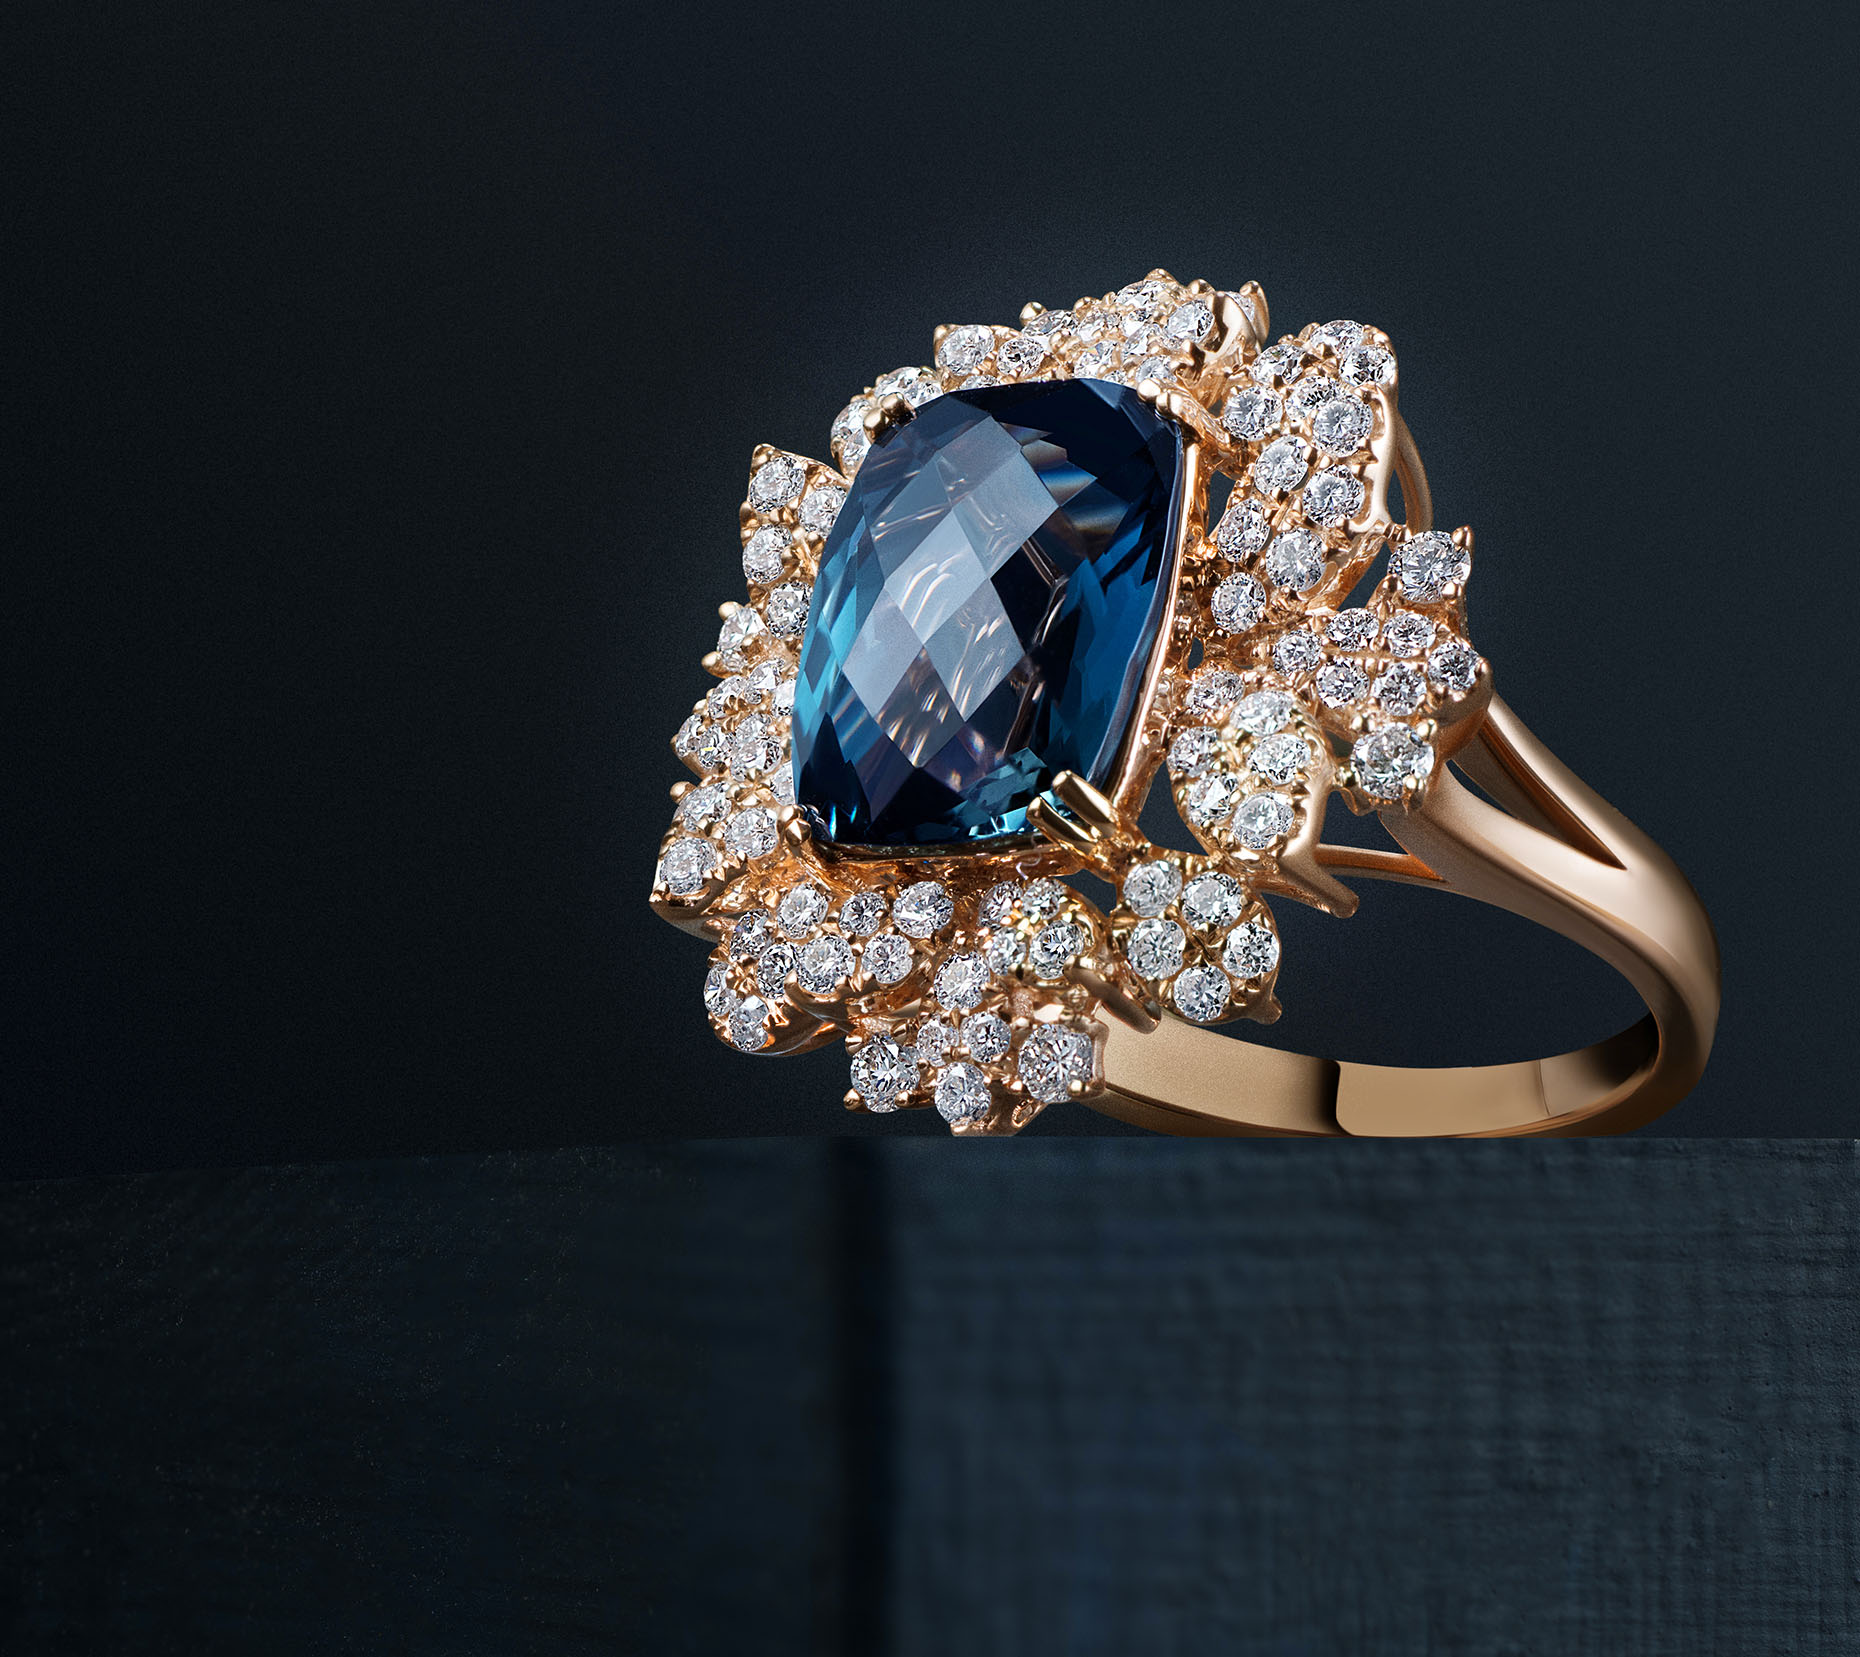 new-york-still-life-photography-diamond-jewelry